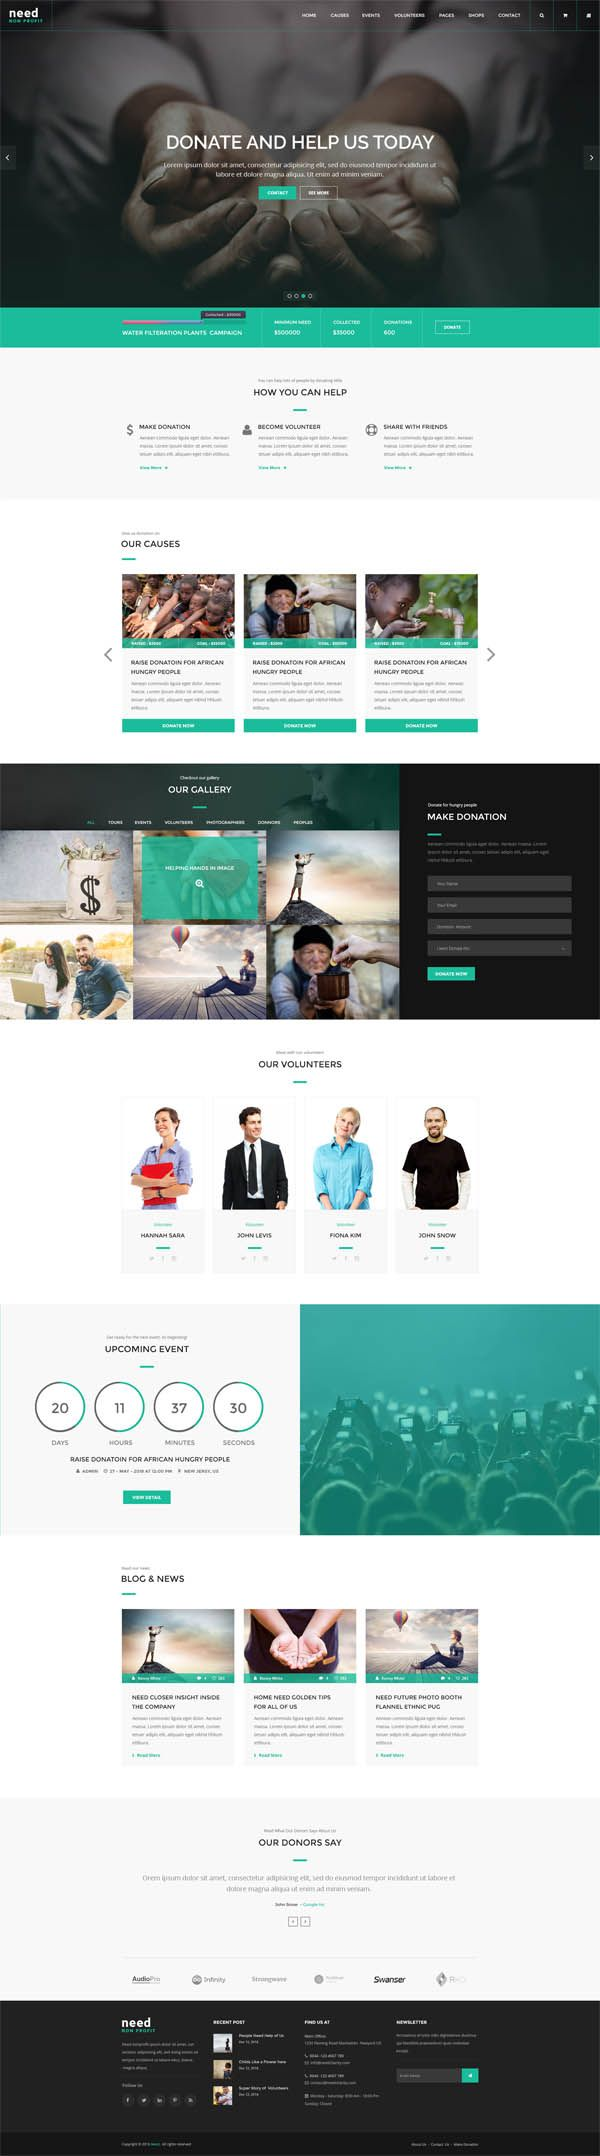 745 best psd templates images on pinterest design websites buy need multipurpose nonprofit psd template by cowthemes on themeforest need is a modern and unique psd template designed for charities donation sites pronofoot35fo Choice Image